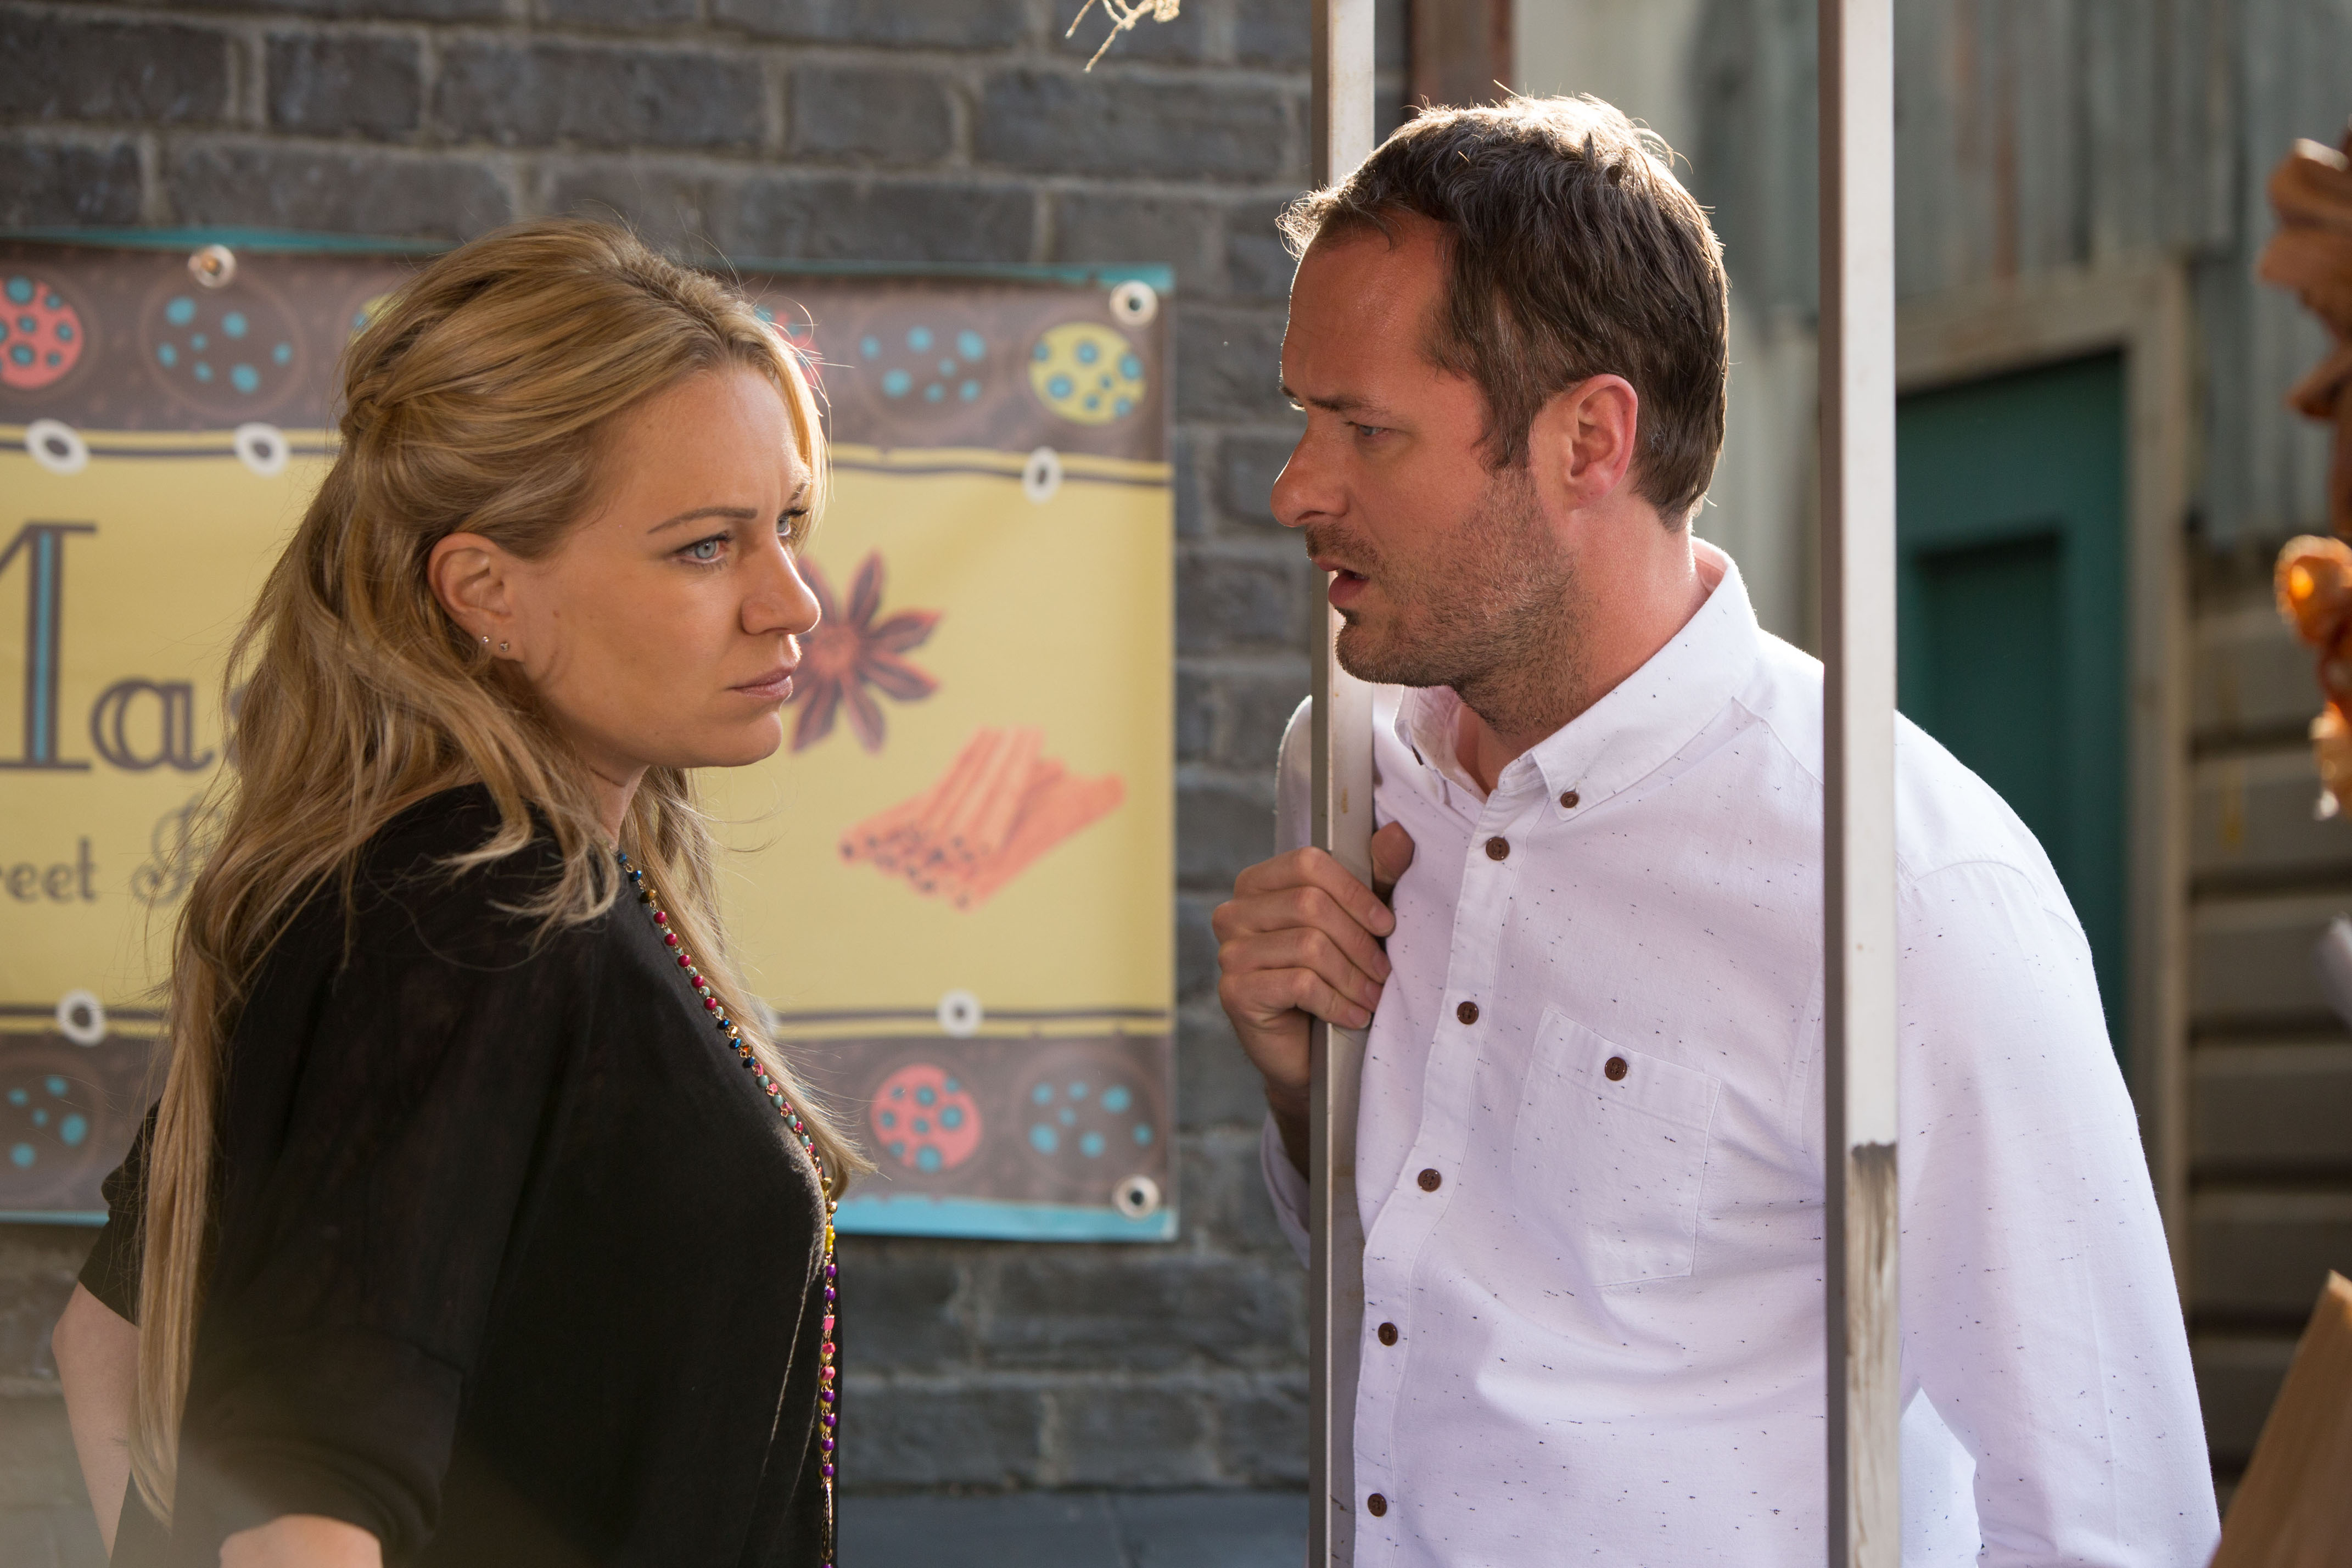 WARNING: Embargoed for publication until 08/09/2015 - Programme Name: EastEnders - TX: 17/09/2015 - Episode: 5139 (No. n/a) - Picture Shows: Roxy is stunned by Charlie's idea. Roxy Mitchell (RITA SIMONS), Charlie Cotton (DECLAN BENNETT) - (C) BBC - Photographer: Jack Barnes